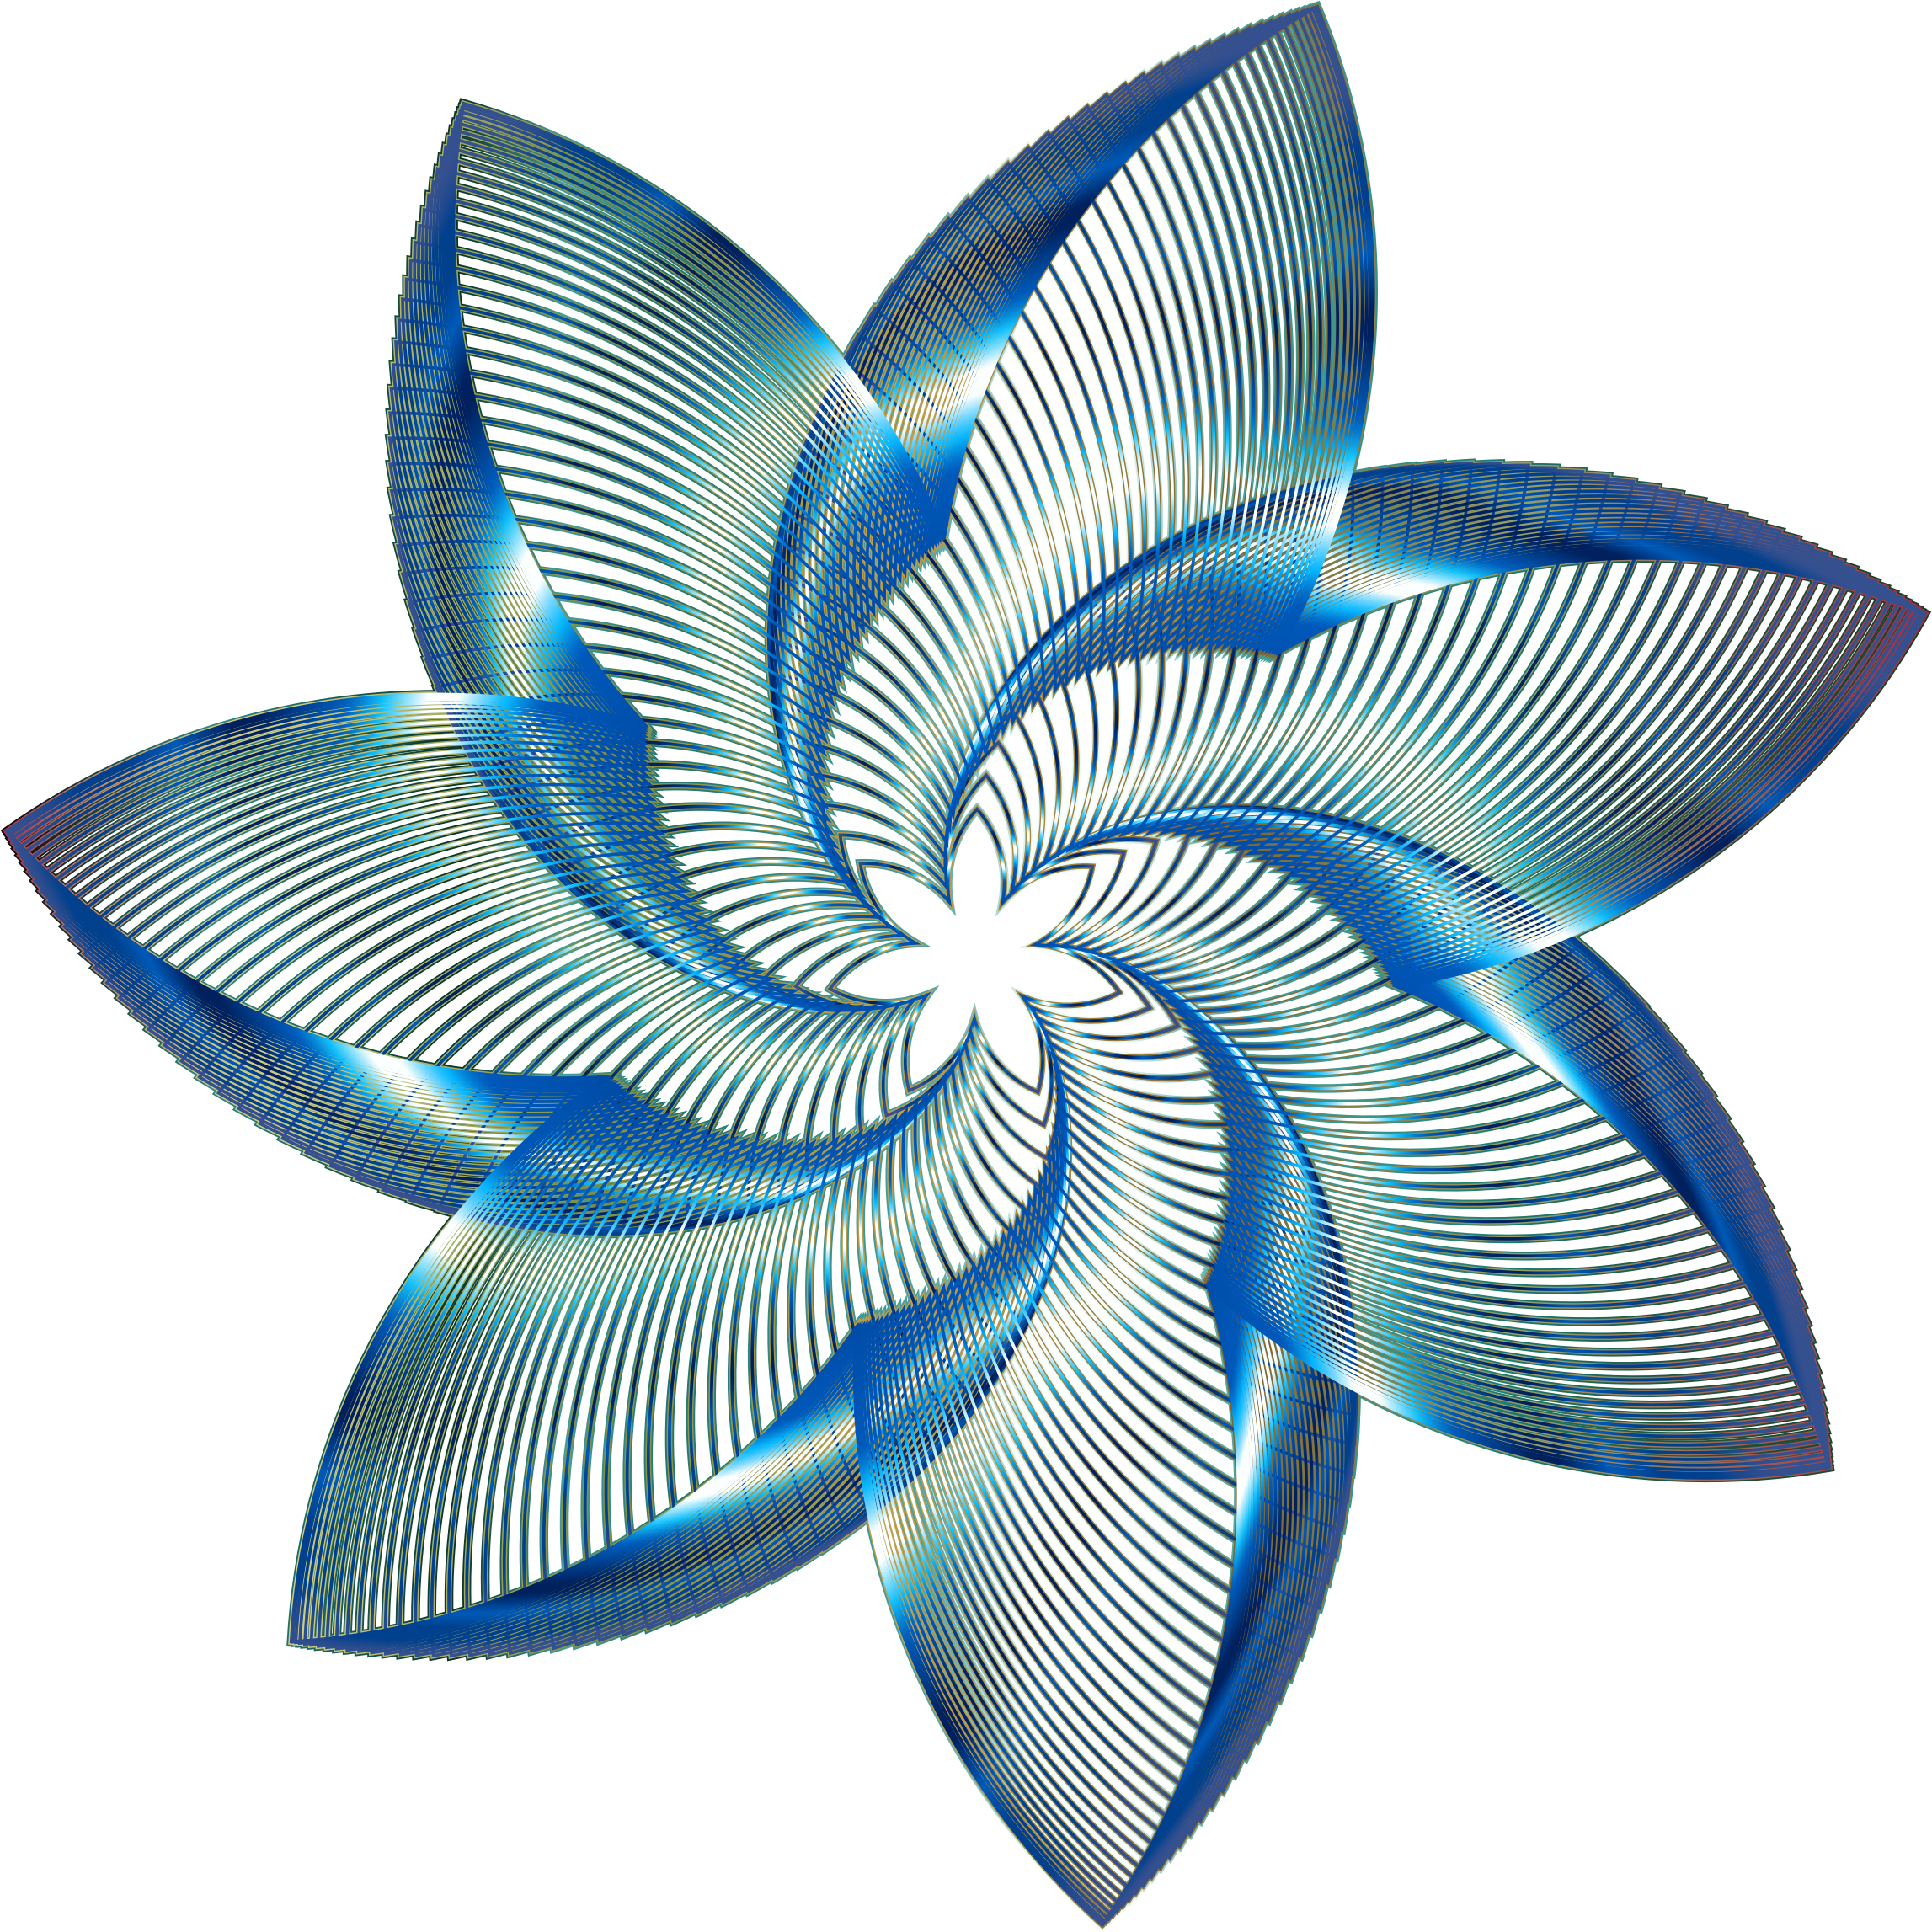 Prismatic Flower Line Art 8 No Background by GDJ